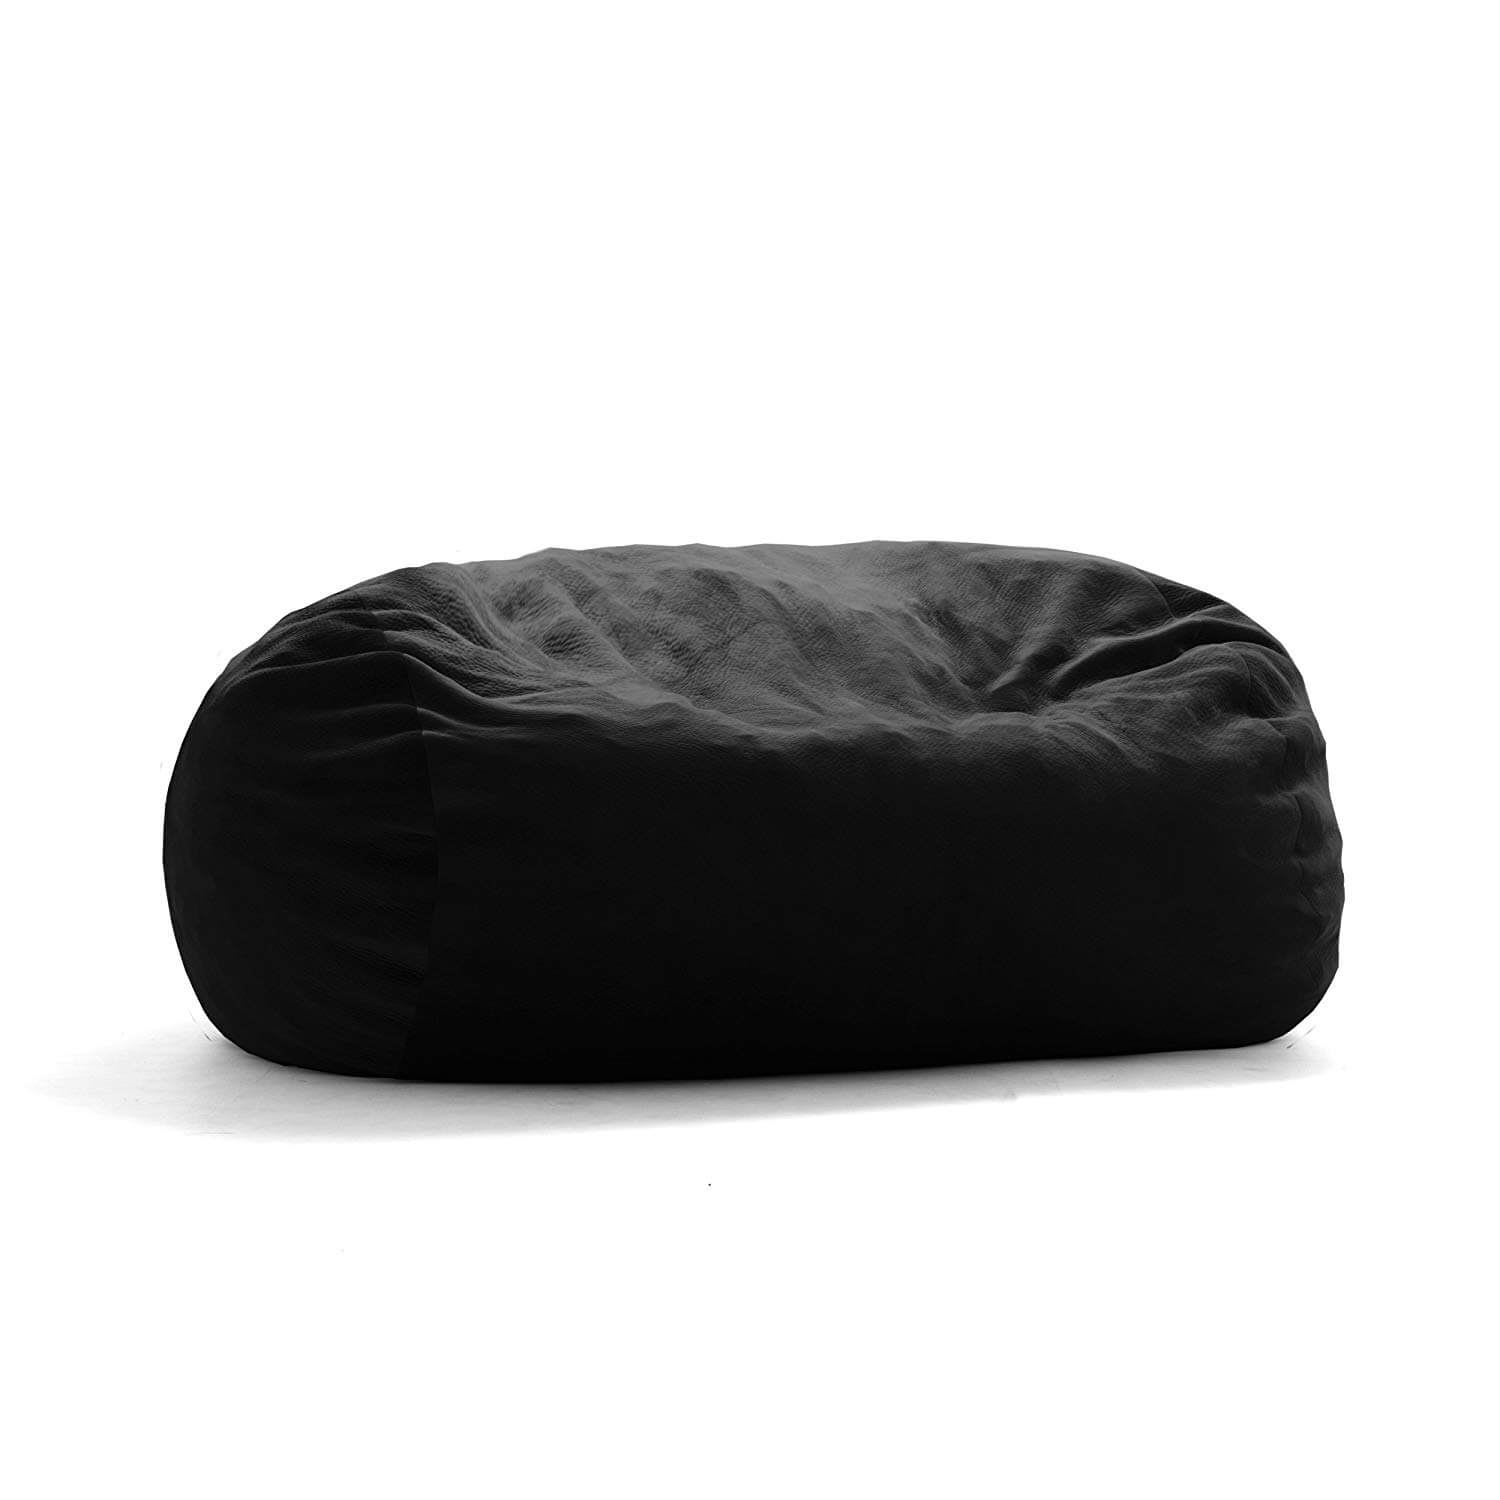 xl bean bag chair karlstad ikea big joe xxl fuf foam filled review updated 2018 lux ripple black